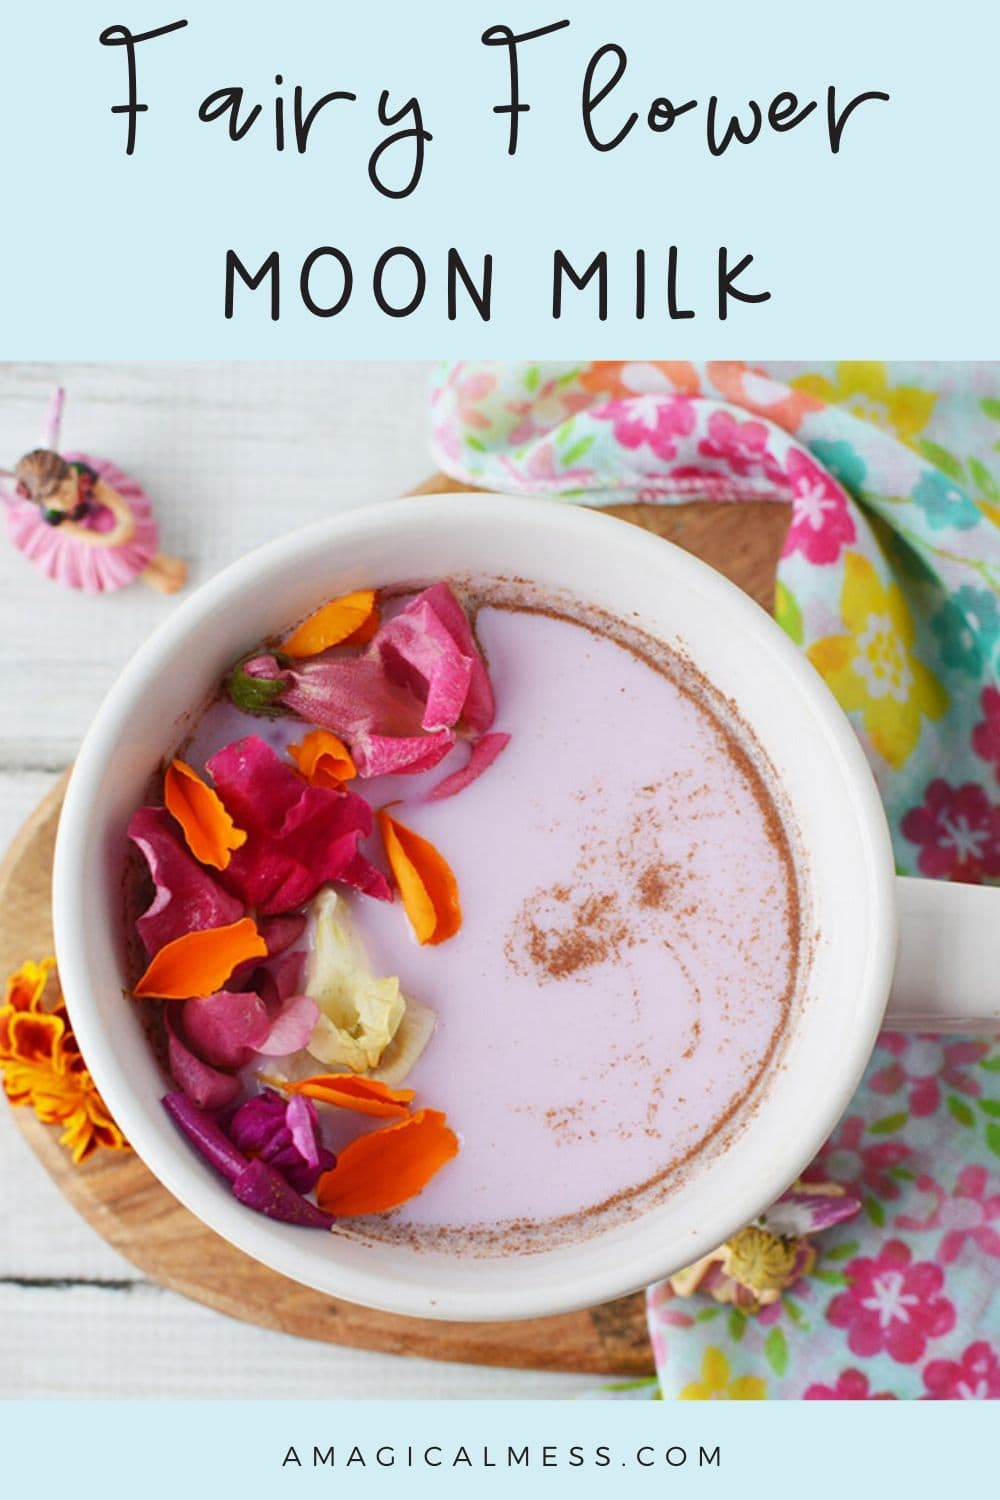 Fairy moon milk with cinnamon and flowers on top